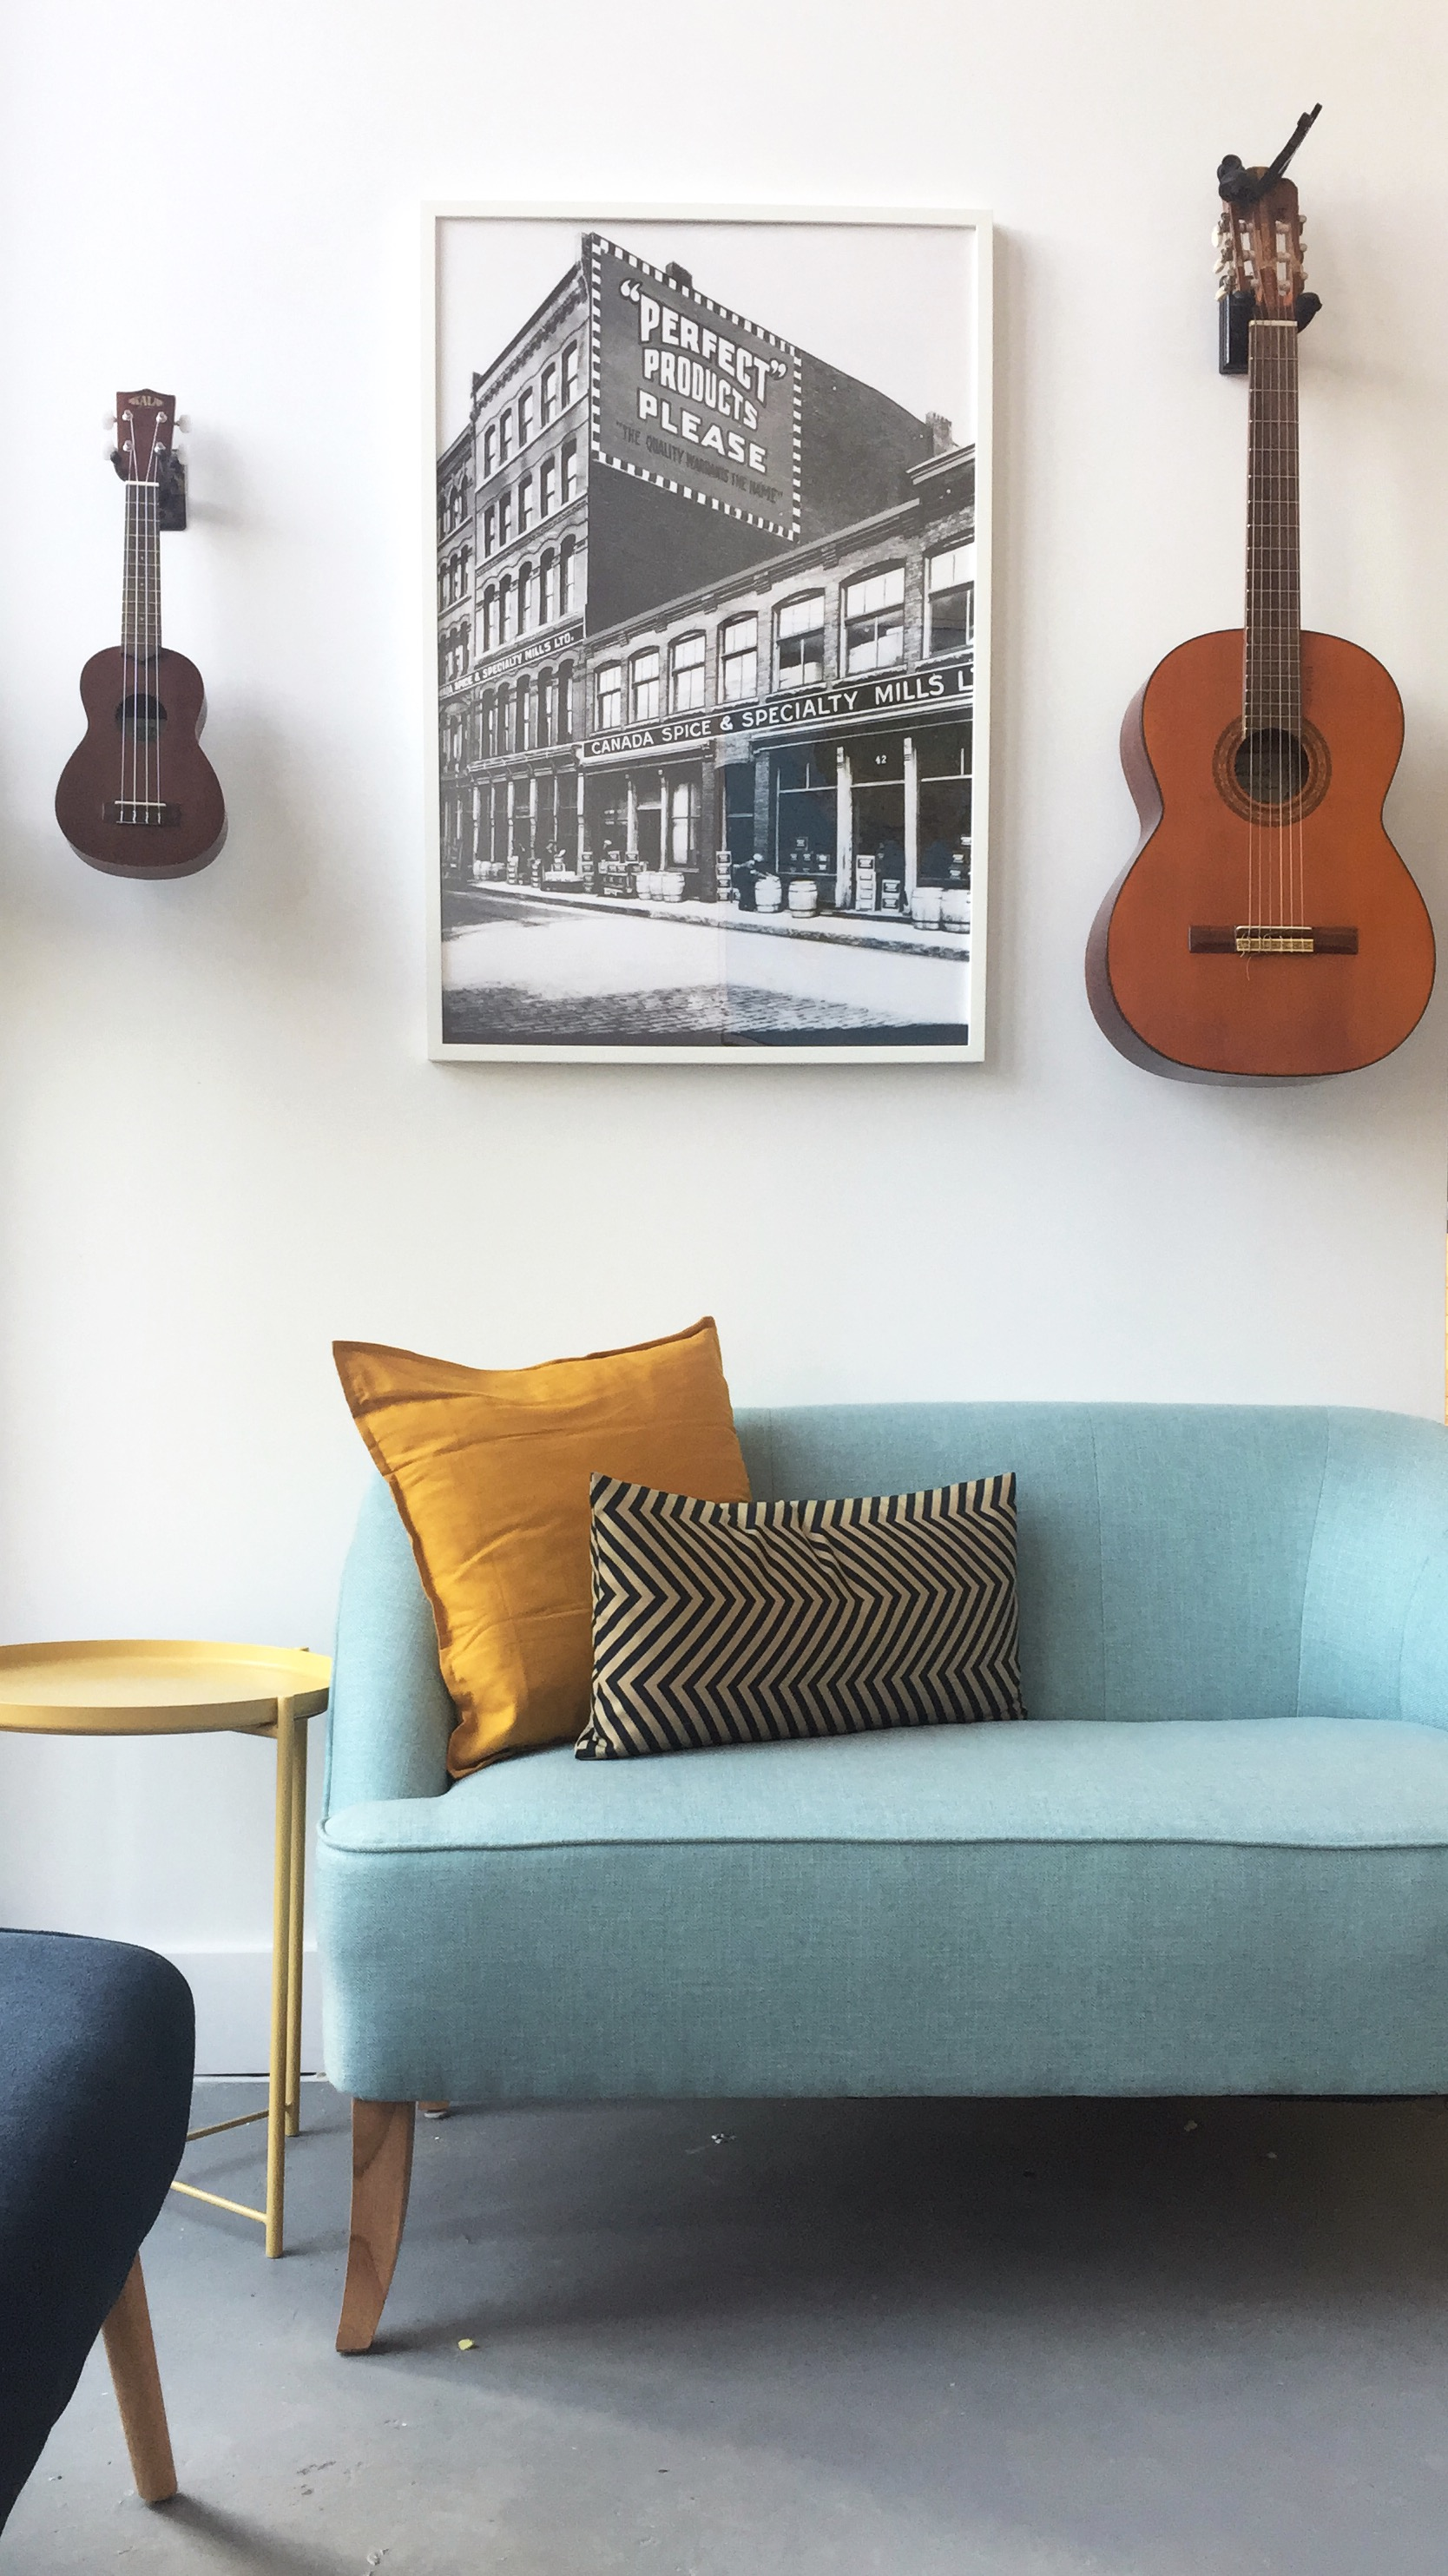 Living - Our lounge area features comfortable couches and chairs so you can kick back after a long day of exploring this city. Grab a drink and join an impromptu jam session if that's your style.